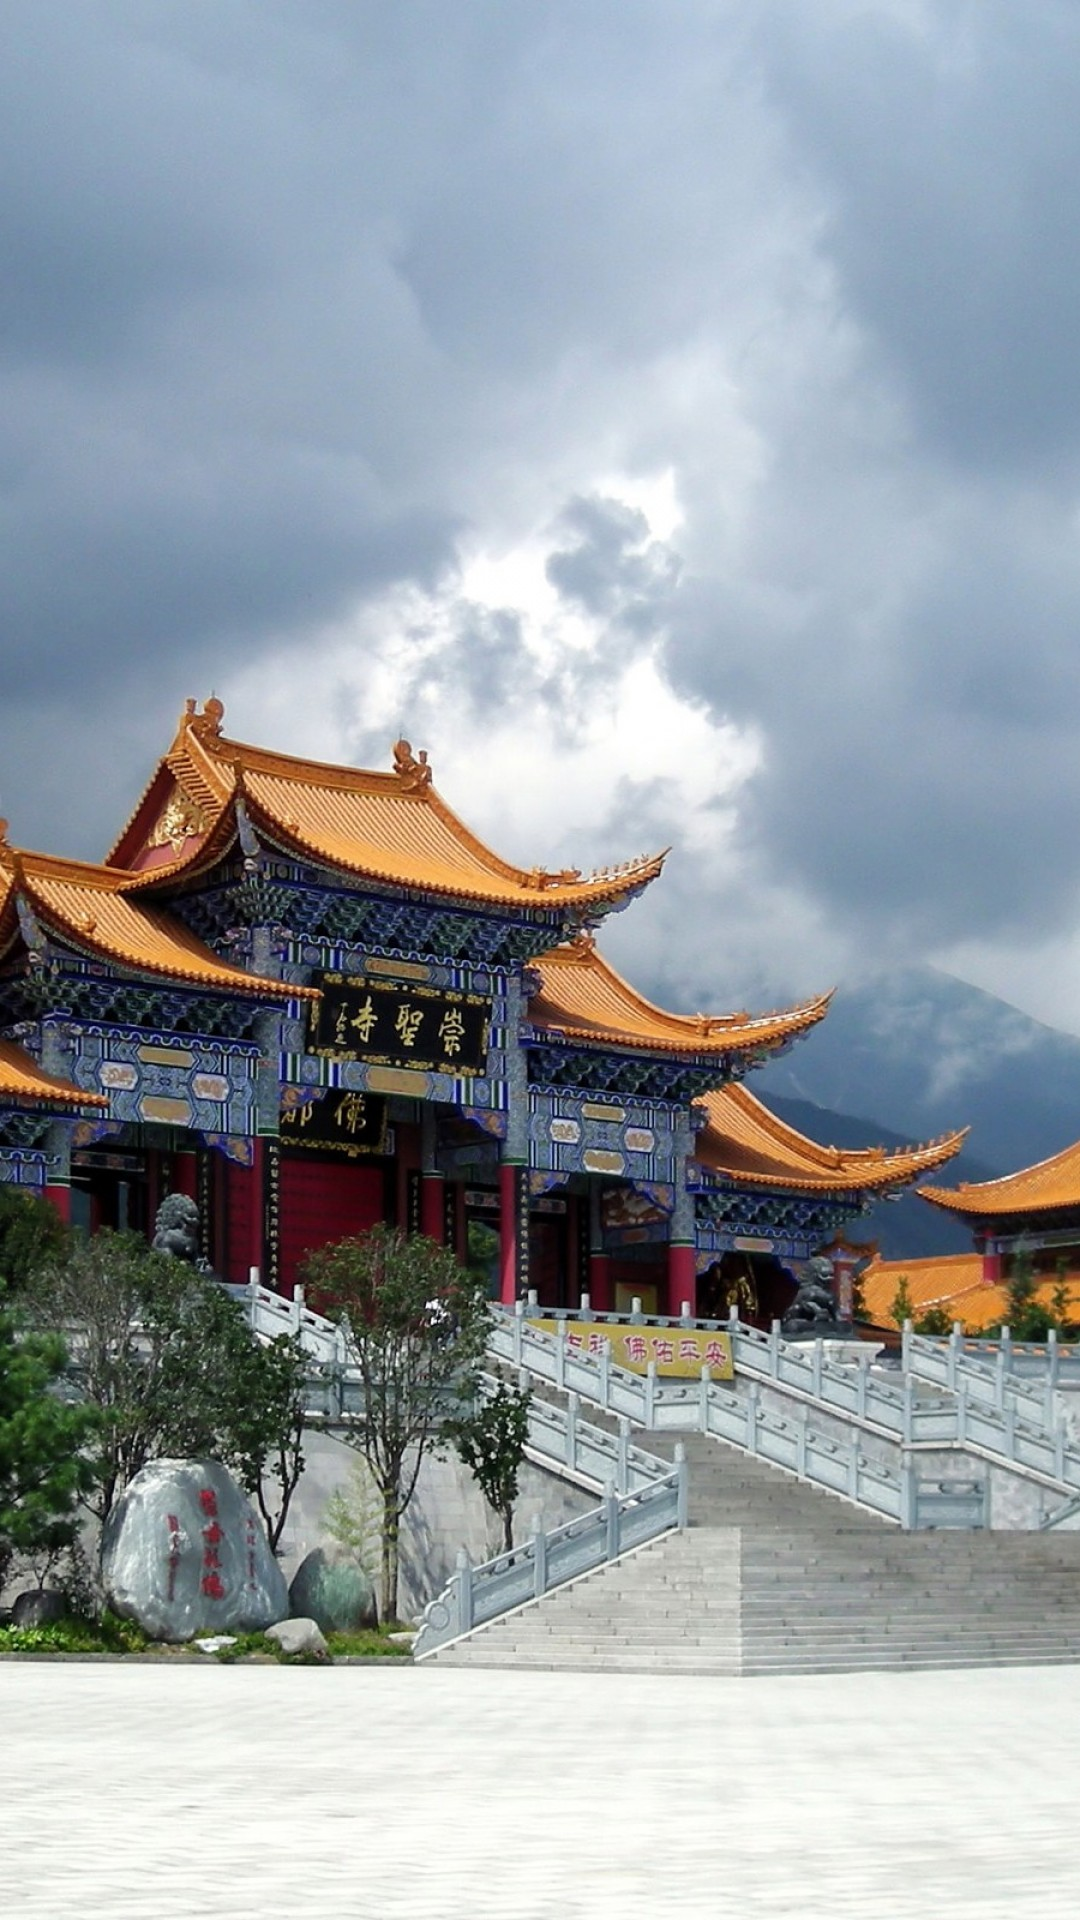 Chinese Ancient Architecture Hd Wallpaper Iphone 6 6s Plus